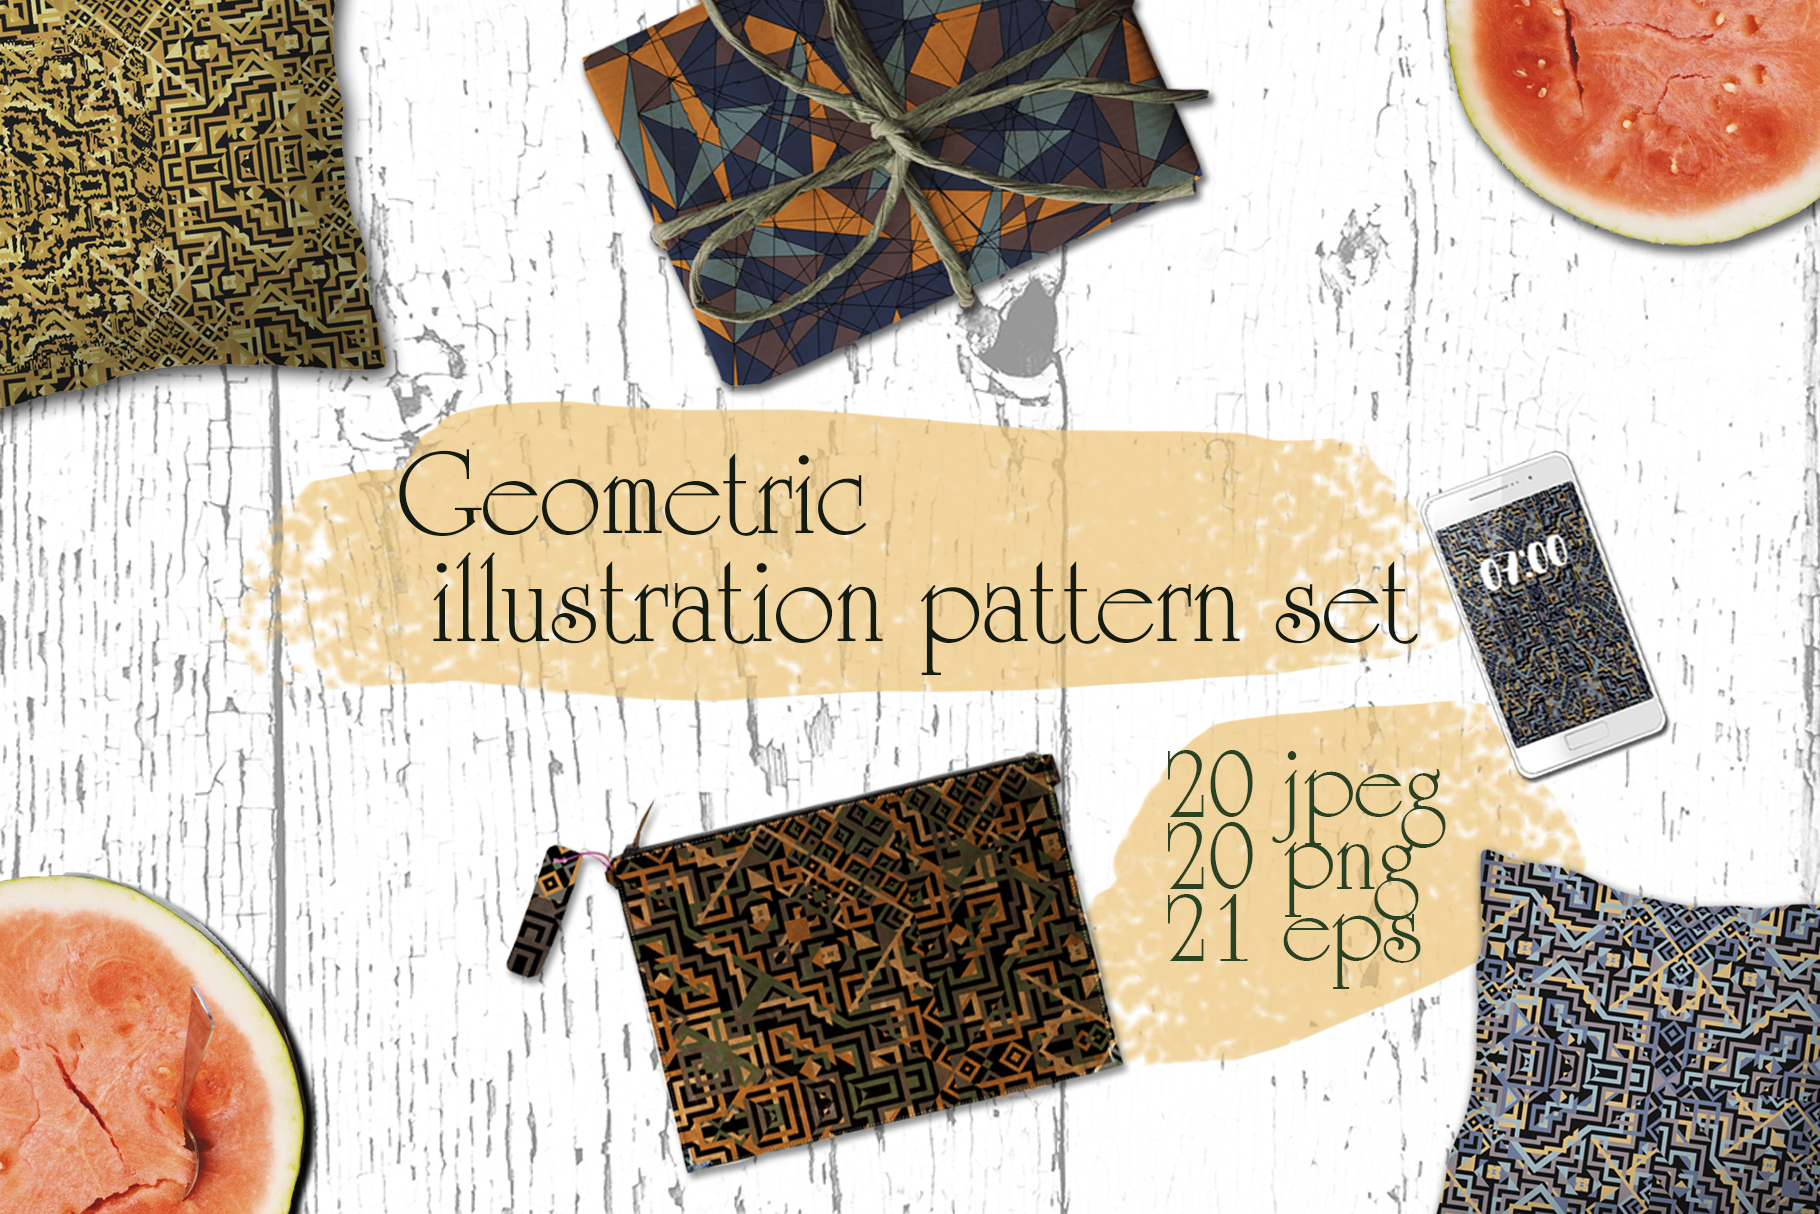 Geometric illustration pattern set example image 1